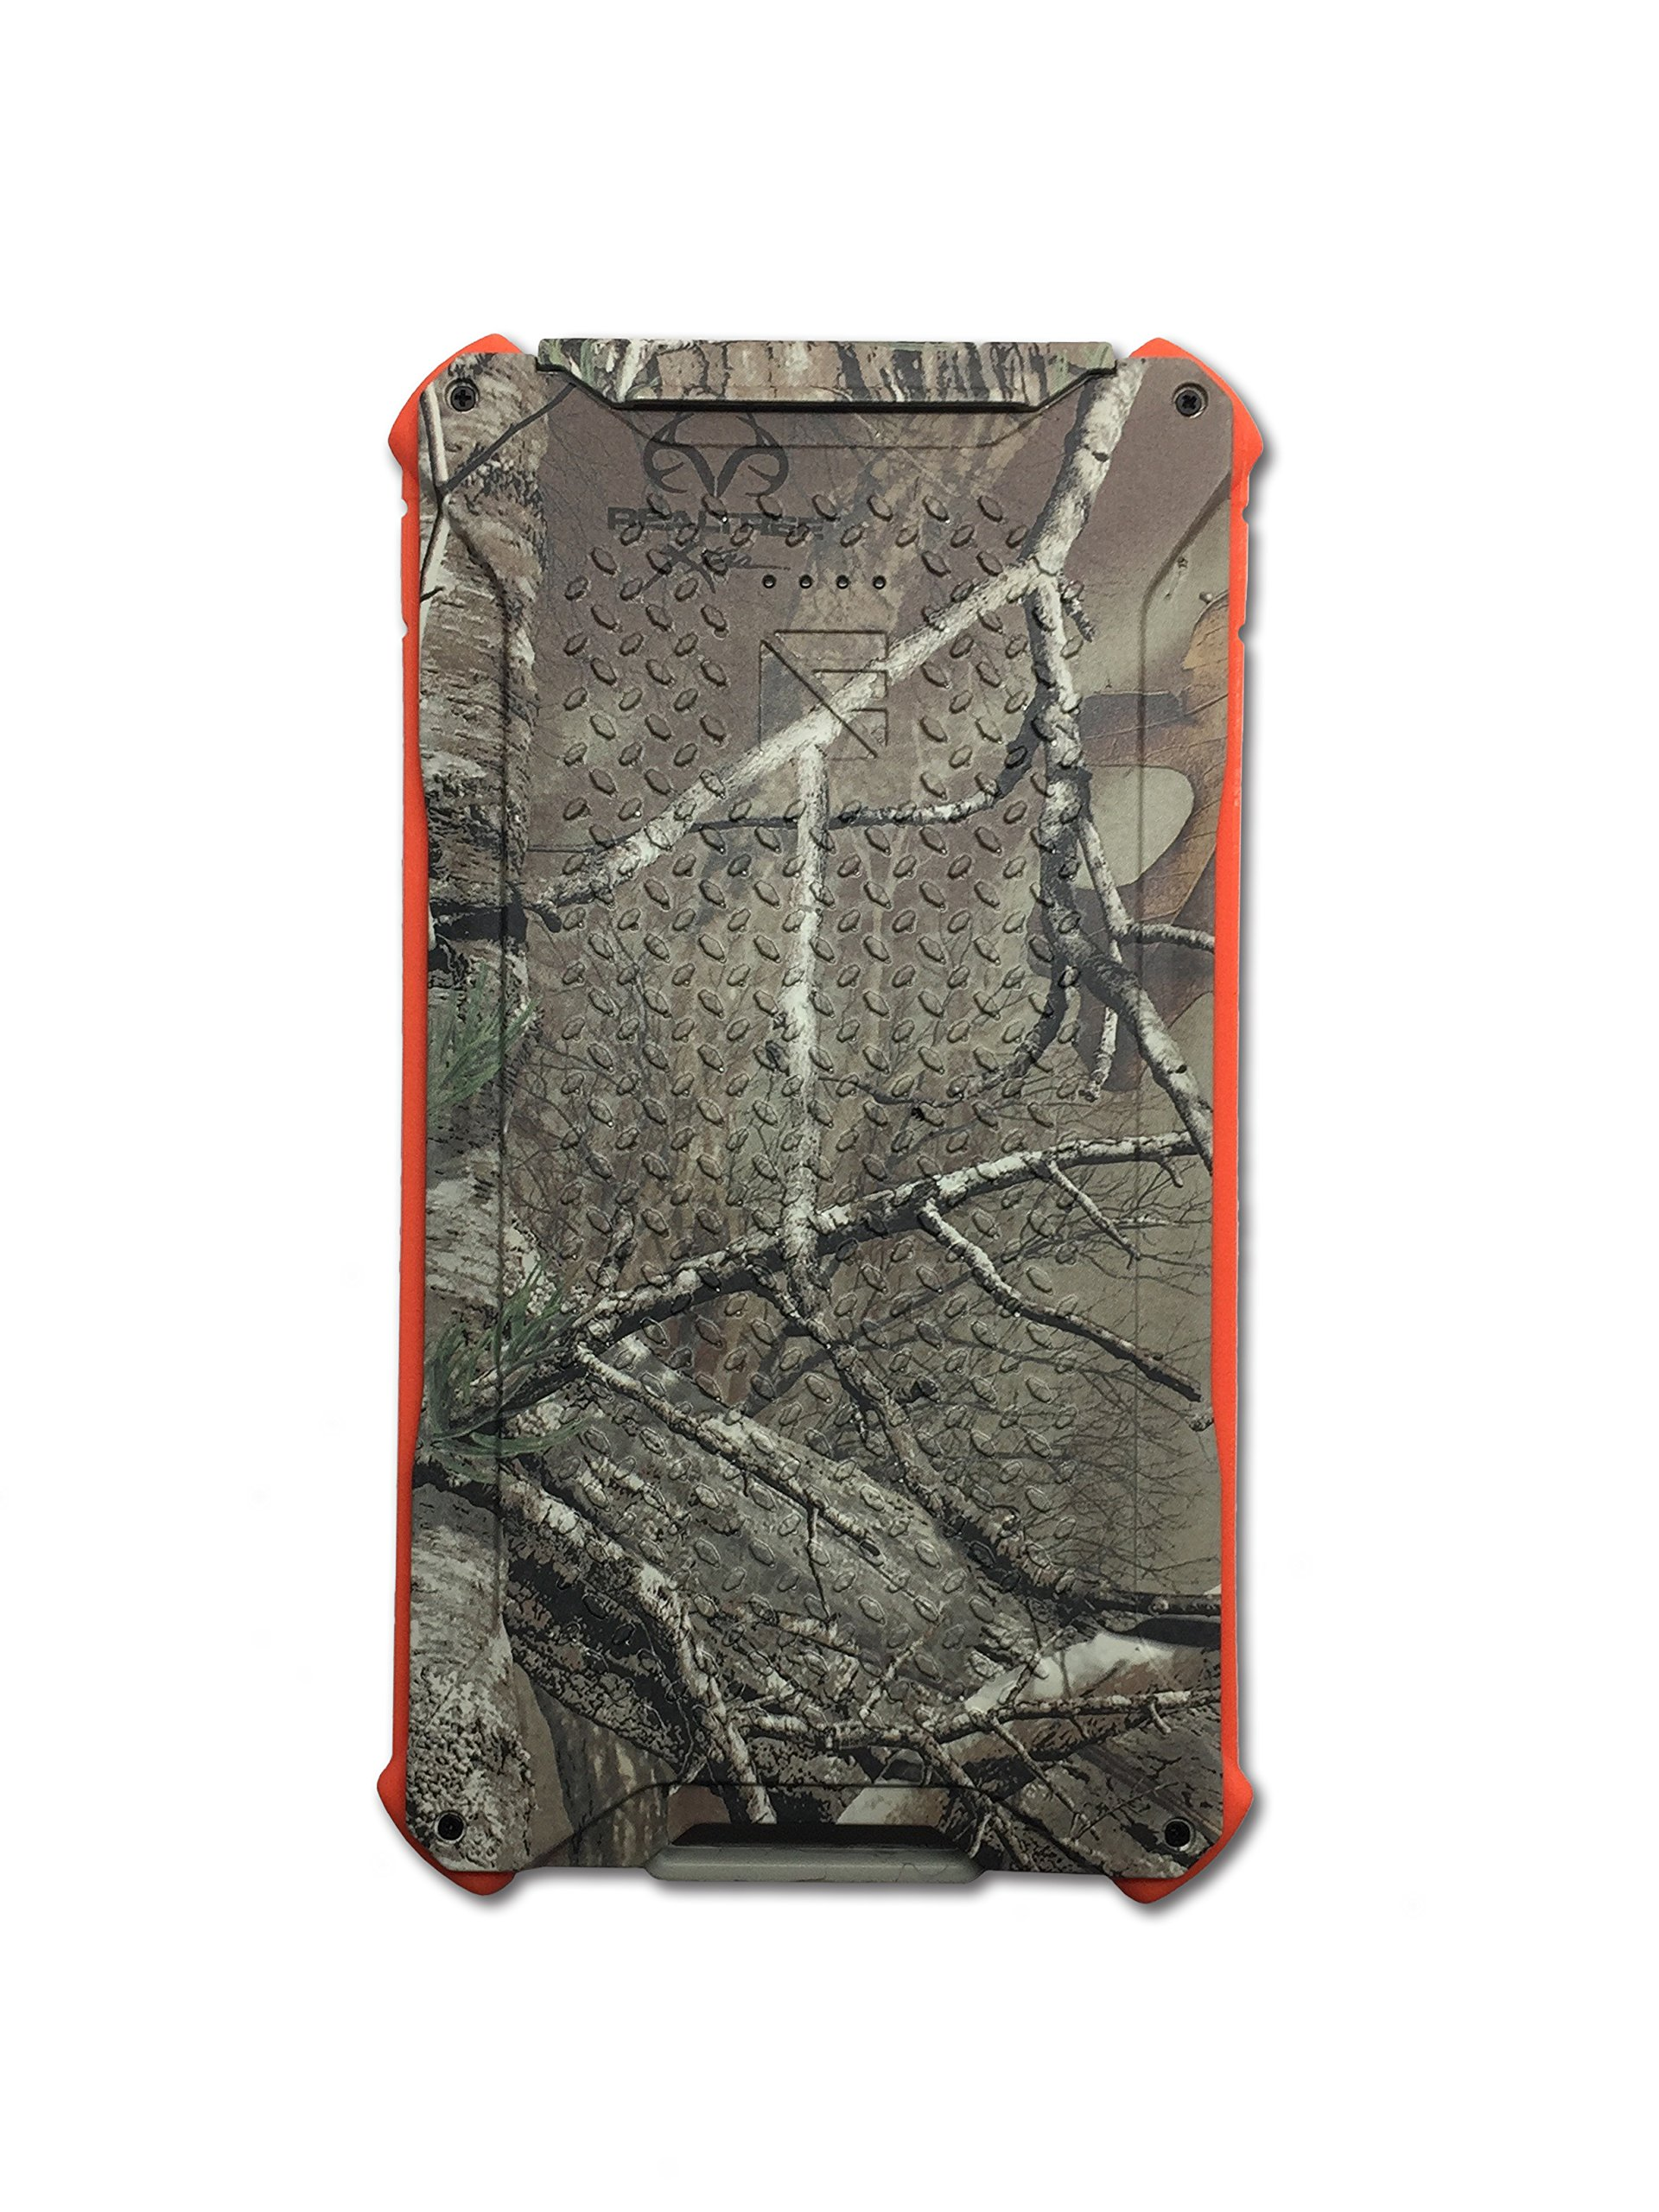 Dark Energy Poseidon IP68 Waterproof, Shockproof, Dustproof, 10,000mah, 2 USB Port, 3.4 Amp Portable Charger and Light PLUS Paracord Charging Cable, Realtree by Dark Energy (Image #7)